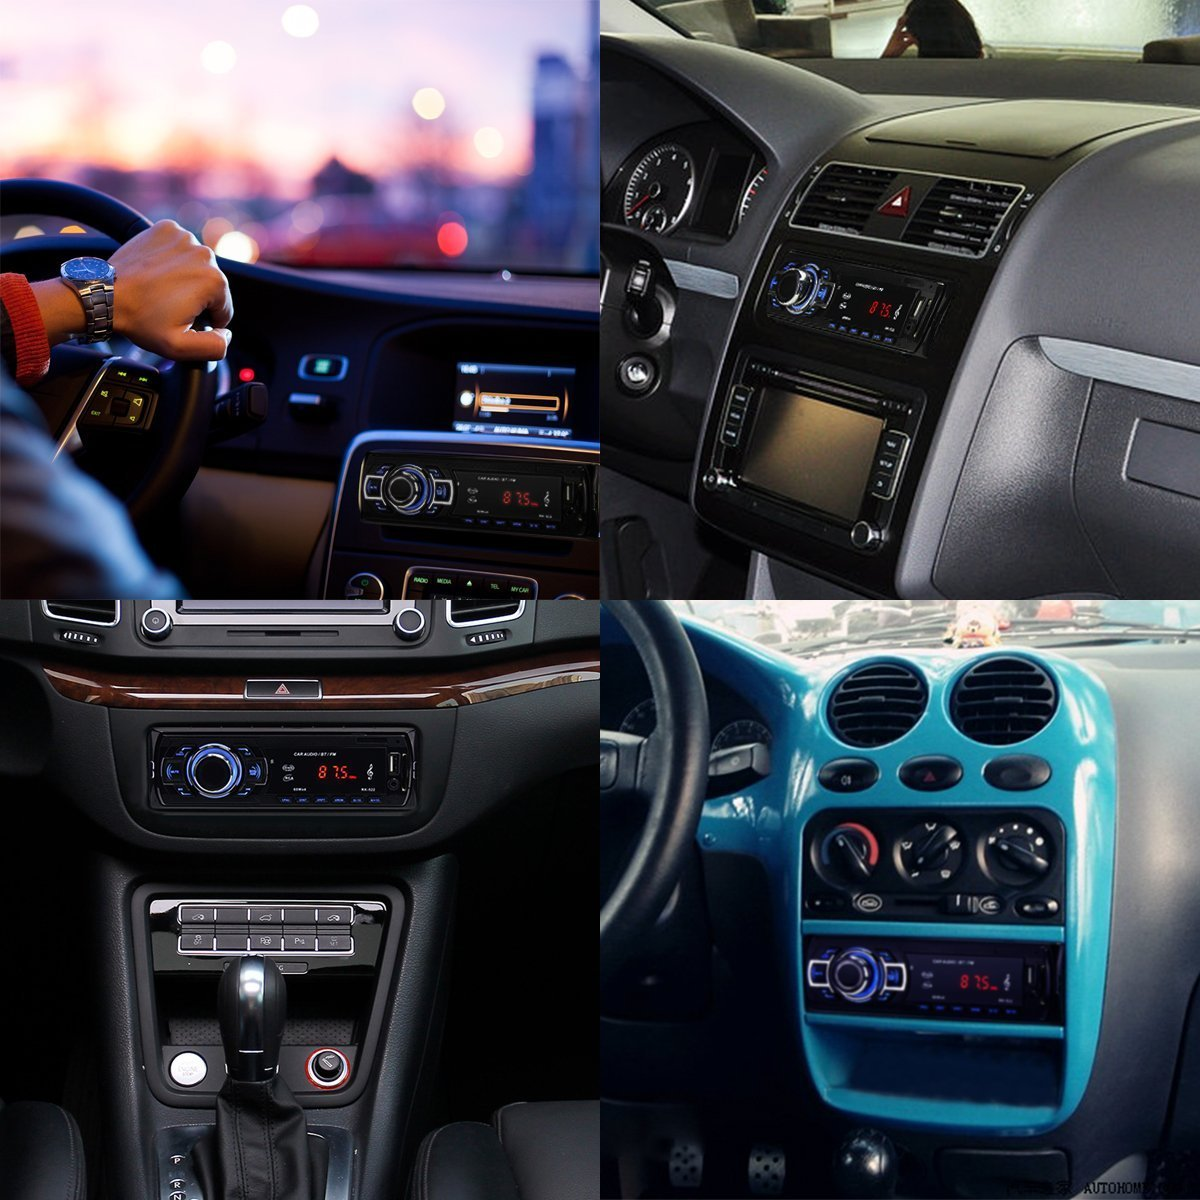 POMILE Car Stereo Audio Receiver Bluetooth, Car Radio MP3 Player Single Din In-Dash USB/SD/FM/AUX/MMC with Remote Control 12V, (No CD/DVD) by POMILE (Image #9)